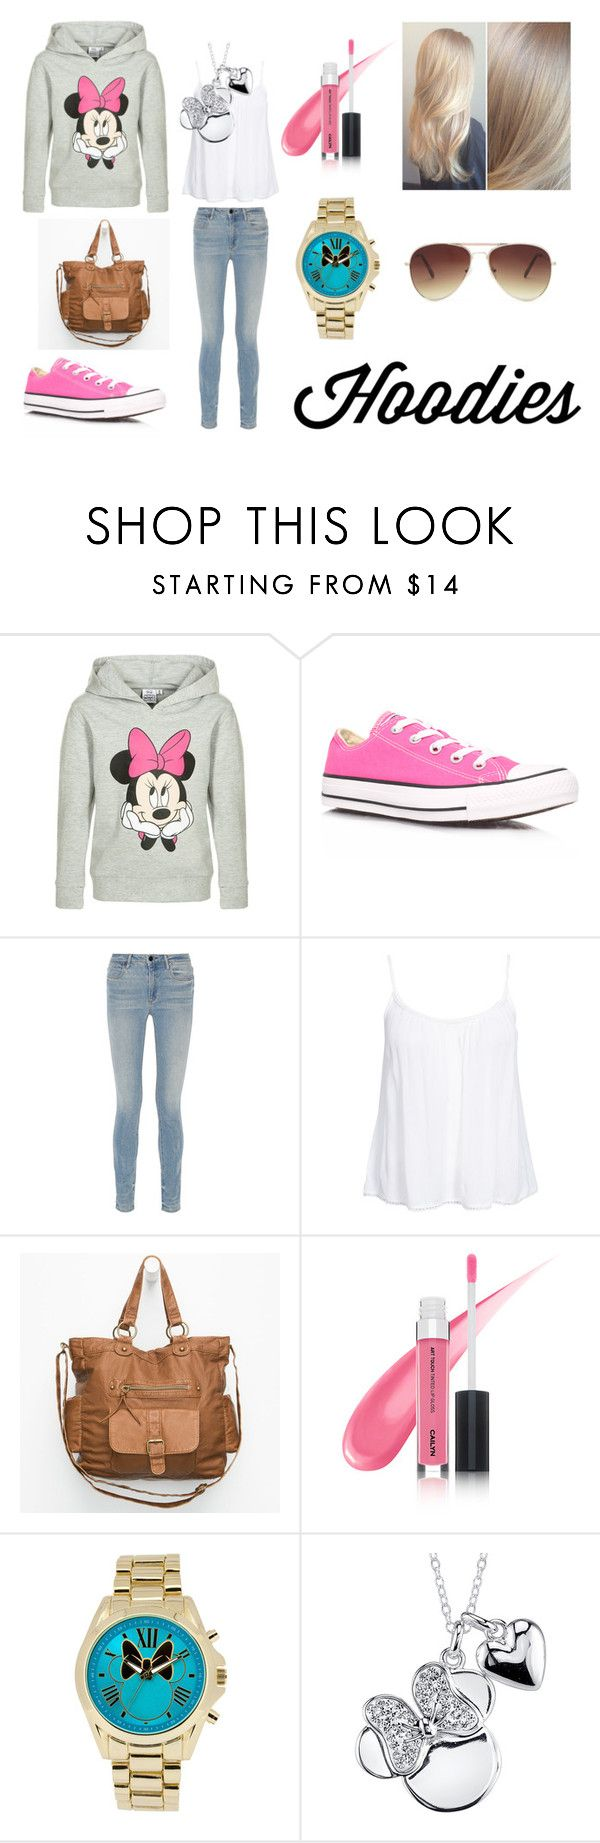 """""""Winter Layering: Hot Hoodies"""" by holly32196 ❤ liked on Polyvore featuring moda, Disney, Converse, Alexander Wang, New Look, T-shirt & Jeans, Redken, Forever 21, women's clothing y women's fashion"""